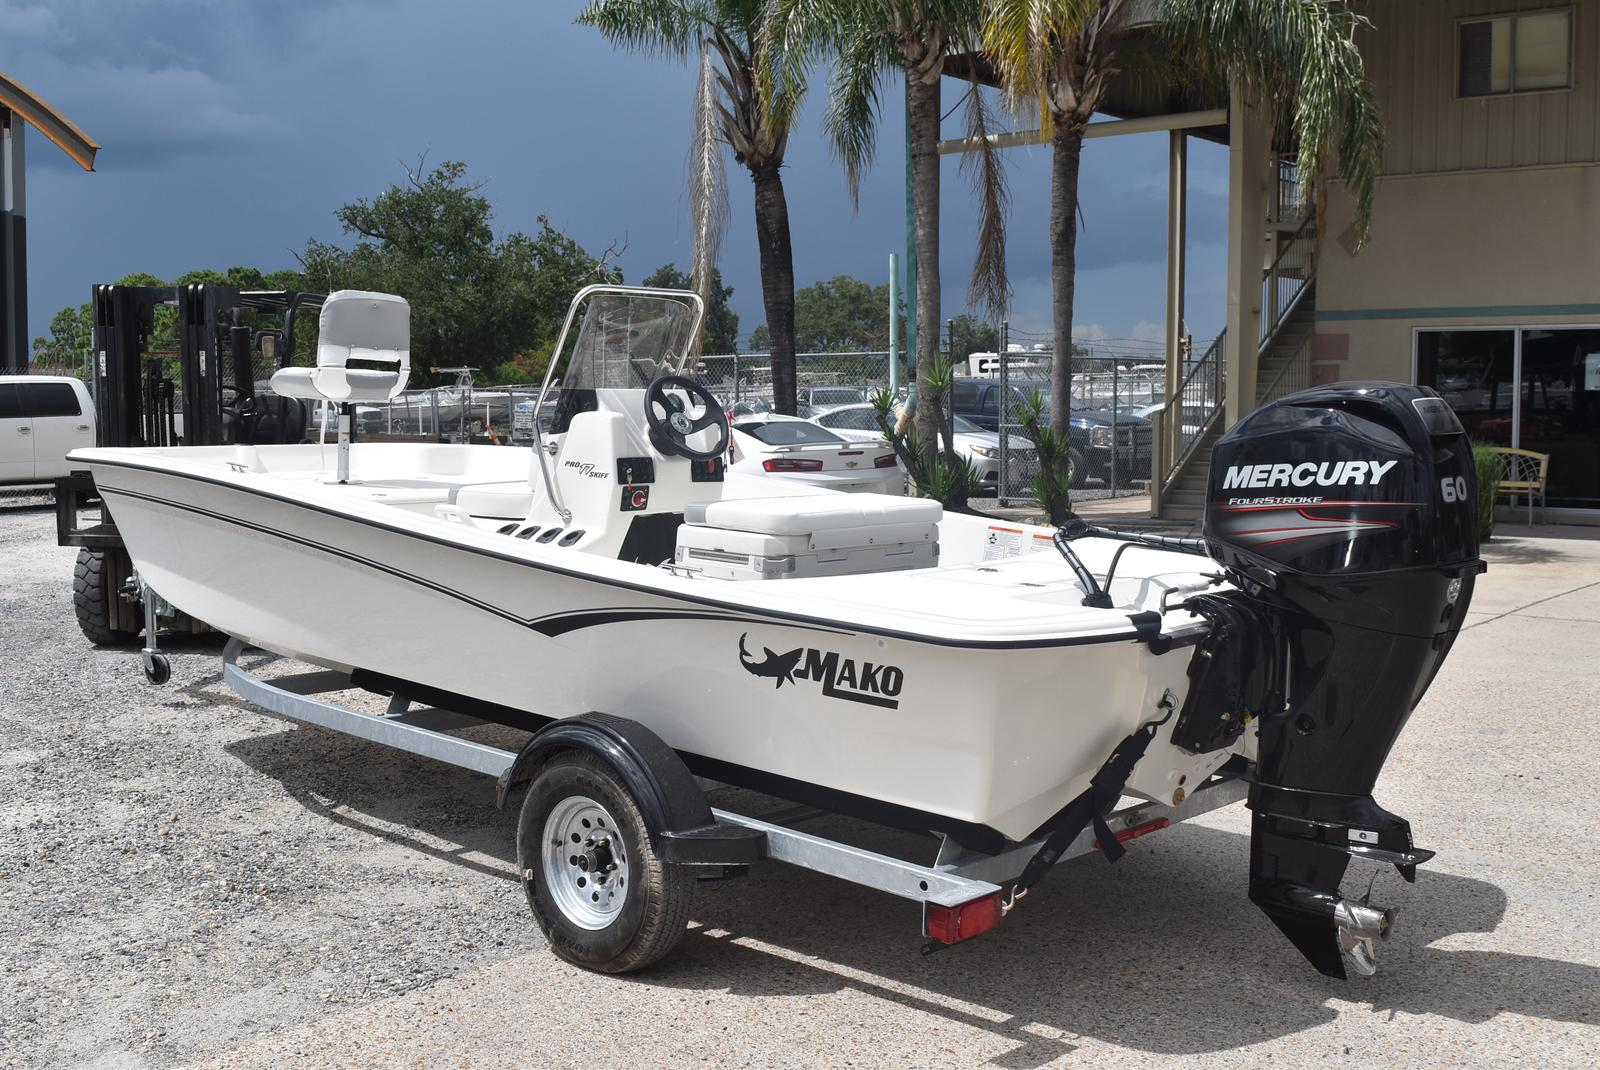 2020 Mako boat for sale, model of the boat is Pro Skiff 17, 75 ELPT & Image # 213 of 702